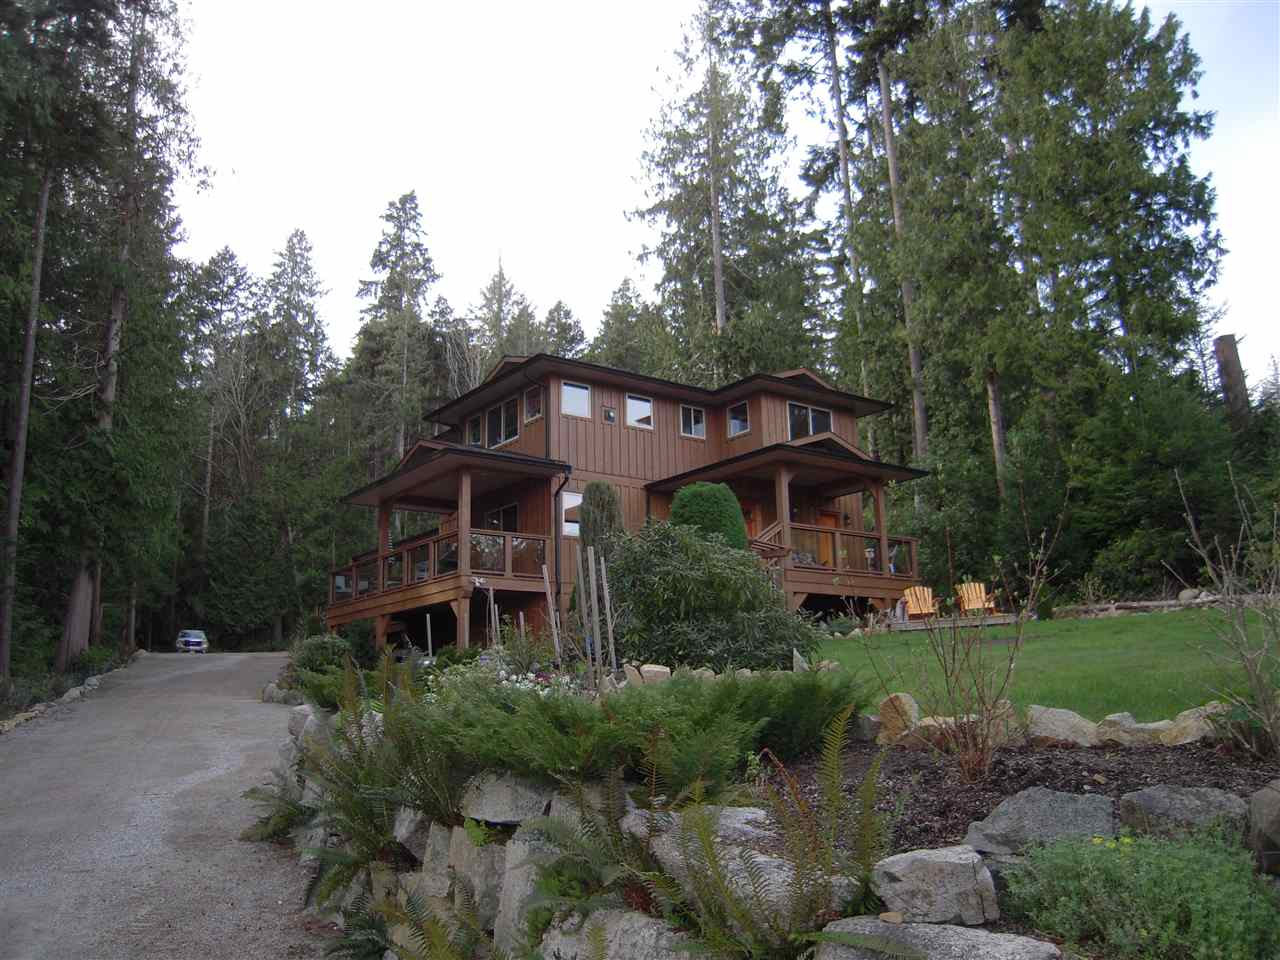 Photo 1: 5447 WAKEFIELD Road in Sechelt: Sechelt District House for sale (Sunshine Coast)  : MLS® # R2047962